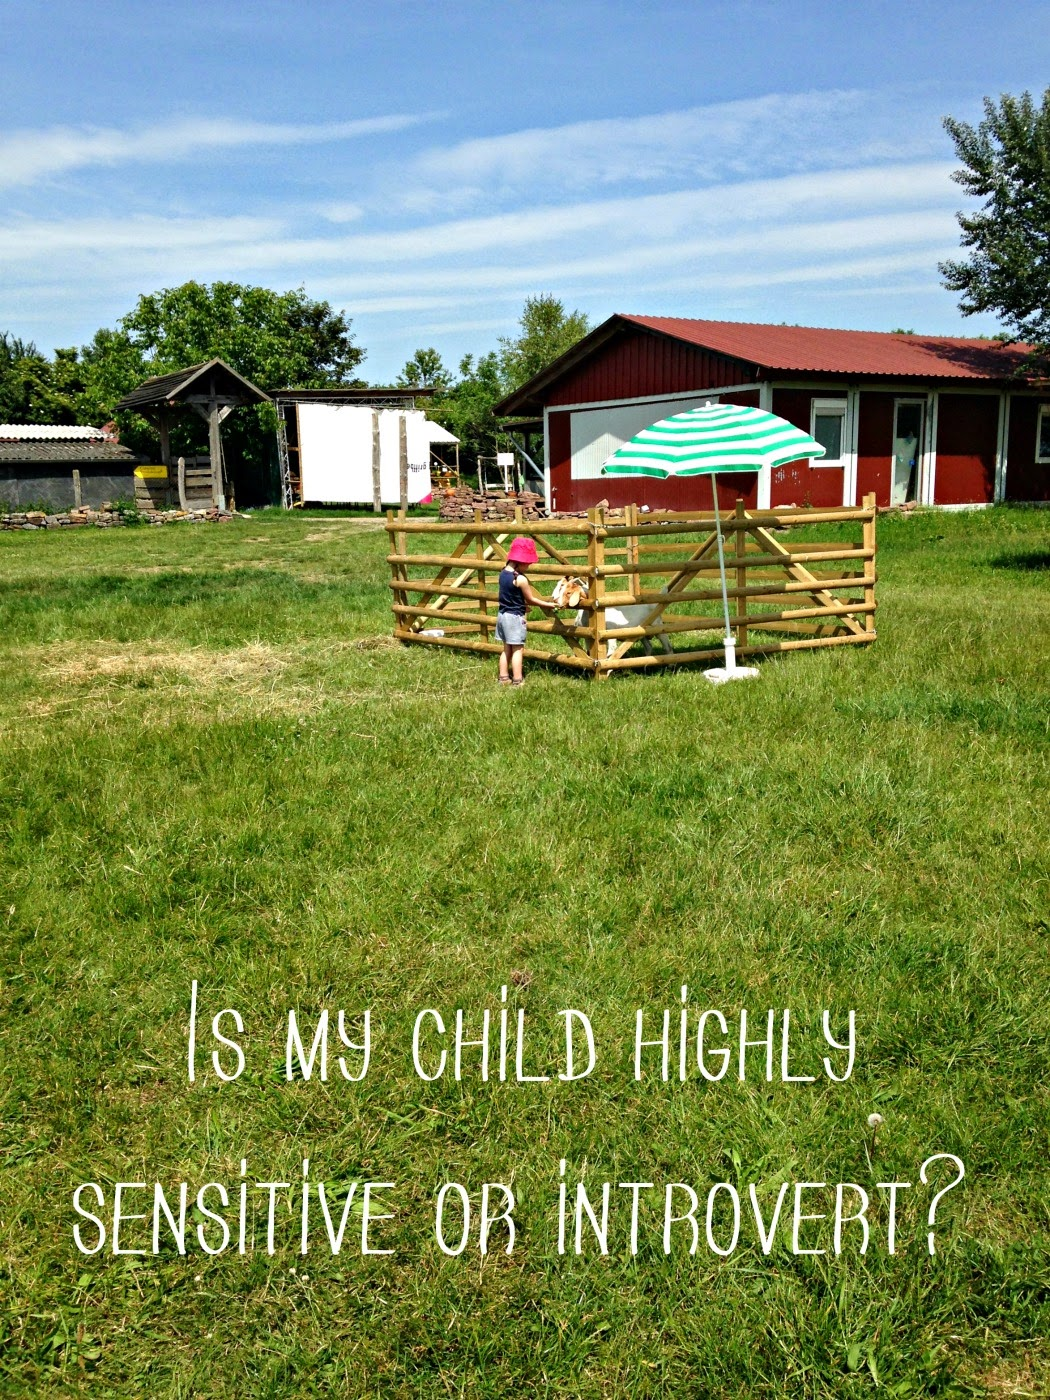 Highly sensitive child or introvert?